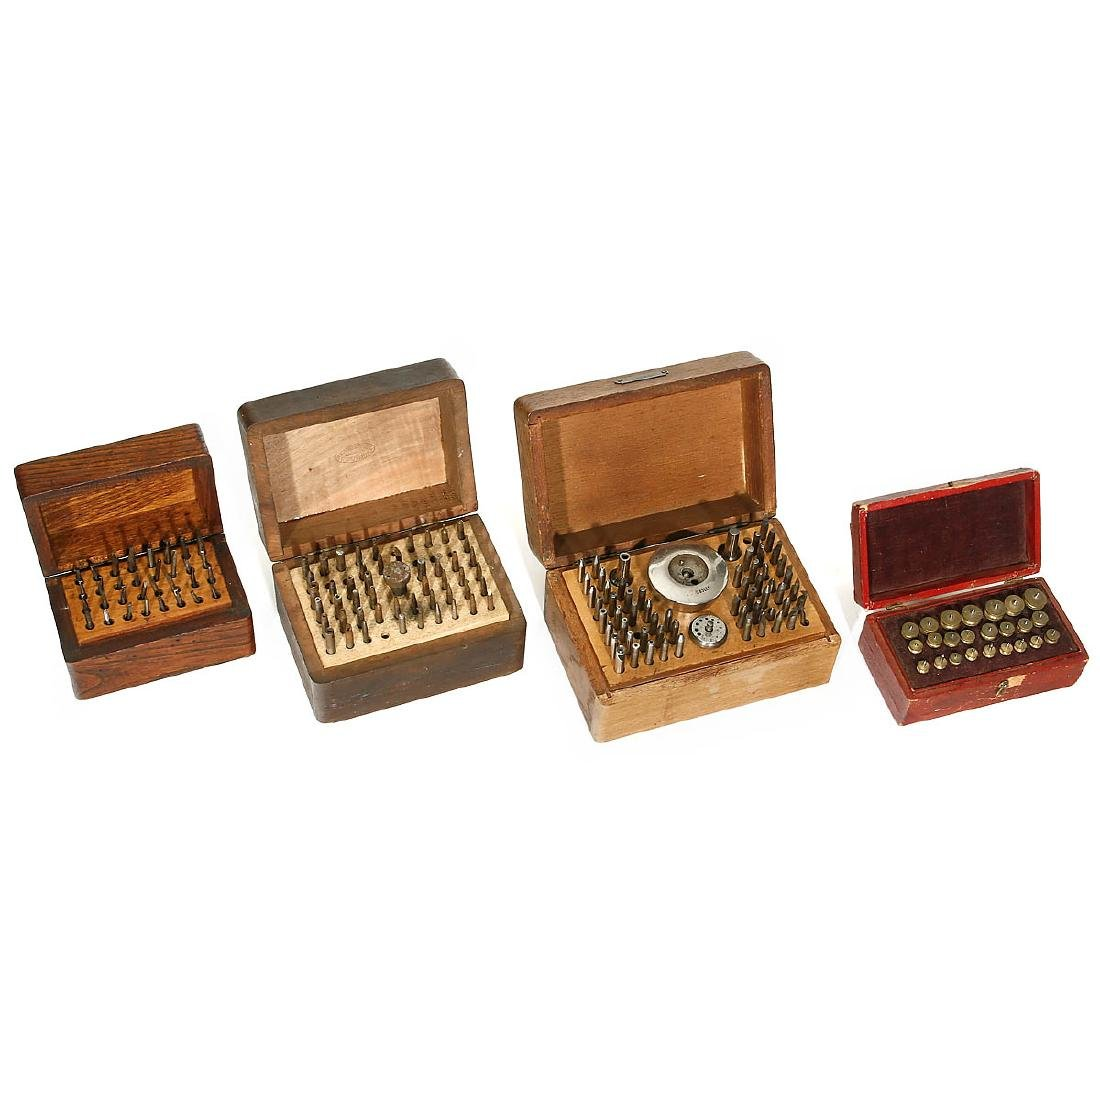 Cased Clockmaker's Tools, 1880-1930